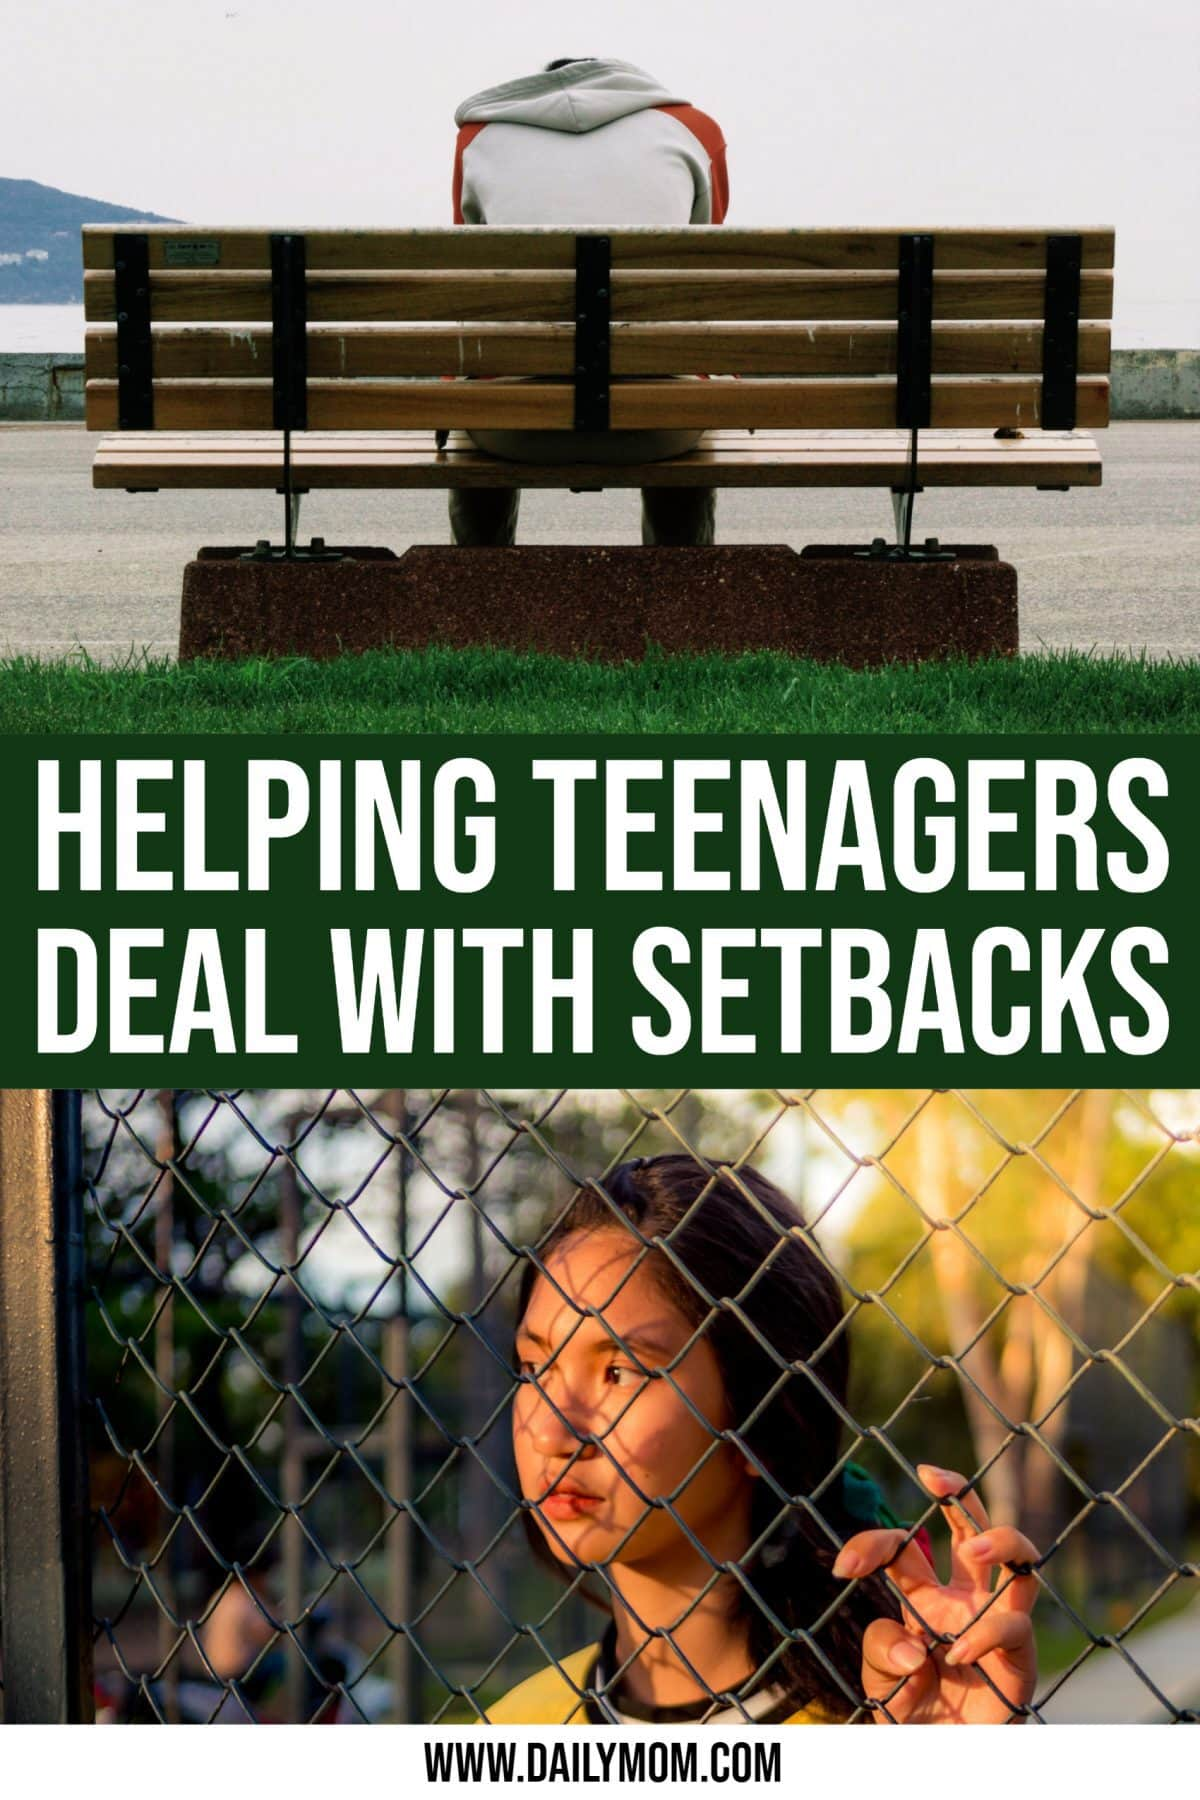 Helping teenagers deal with setbacks